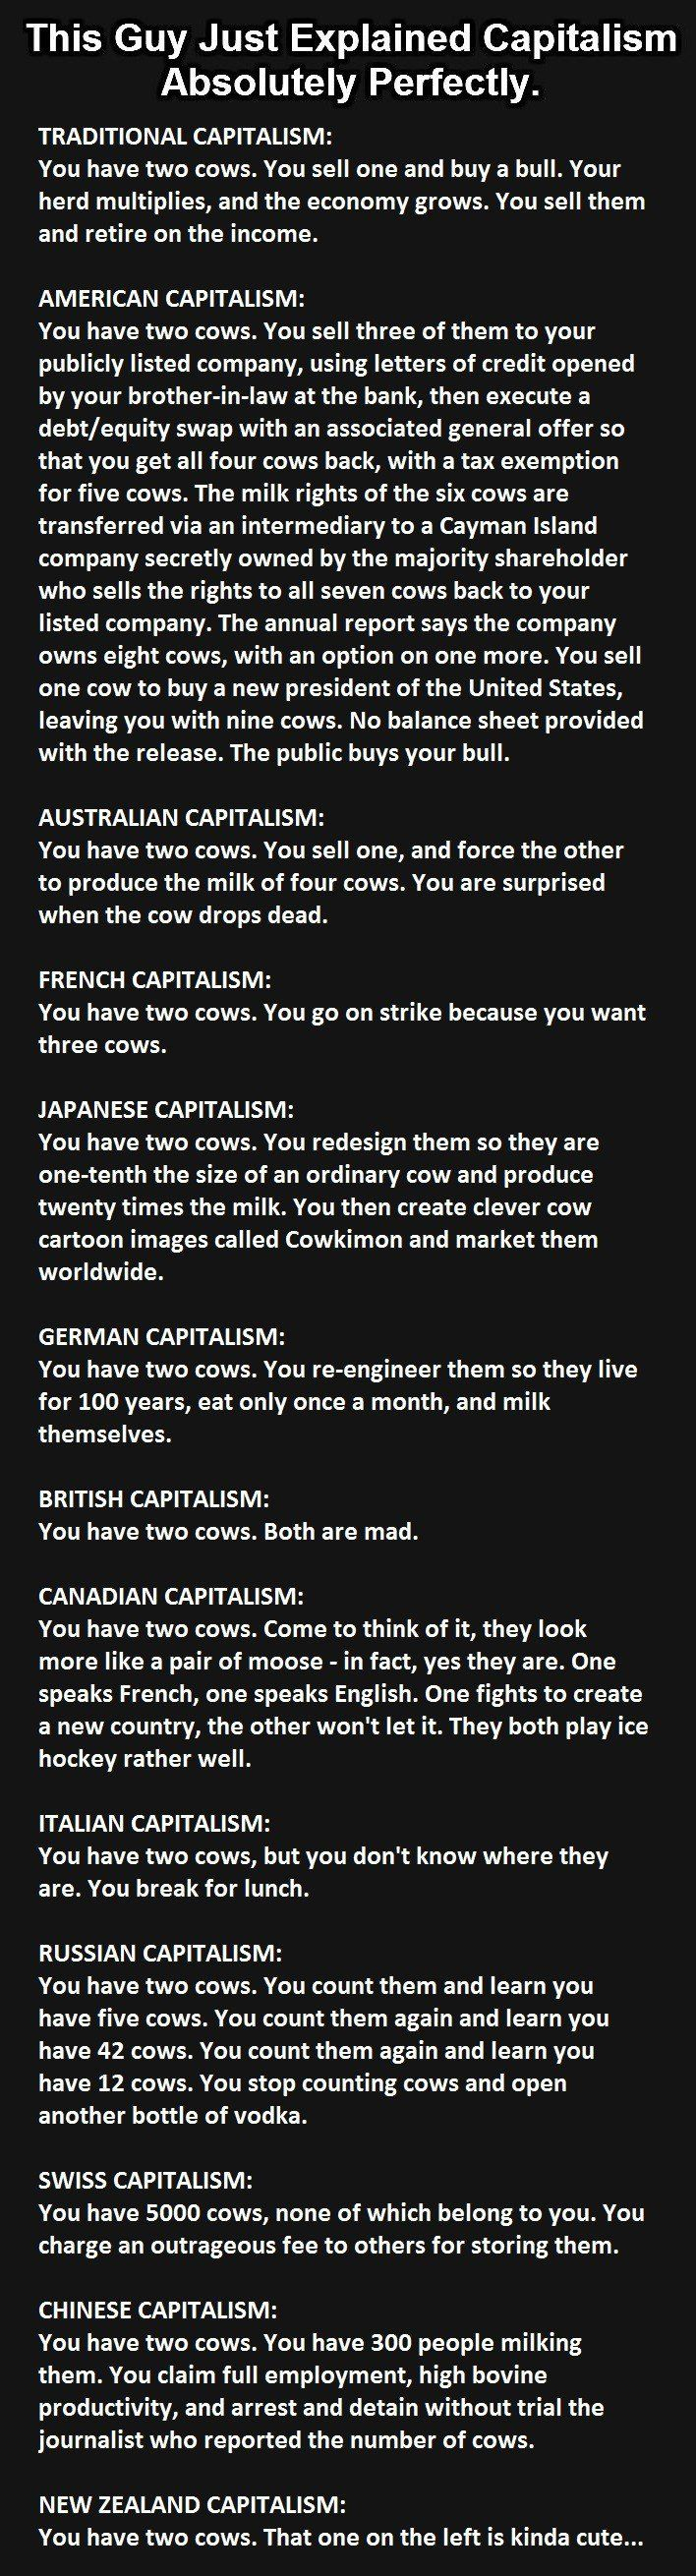 This Guy Just Explained Capitalism Absolutely Perfect